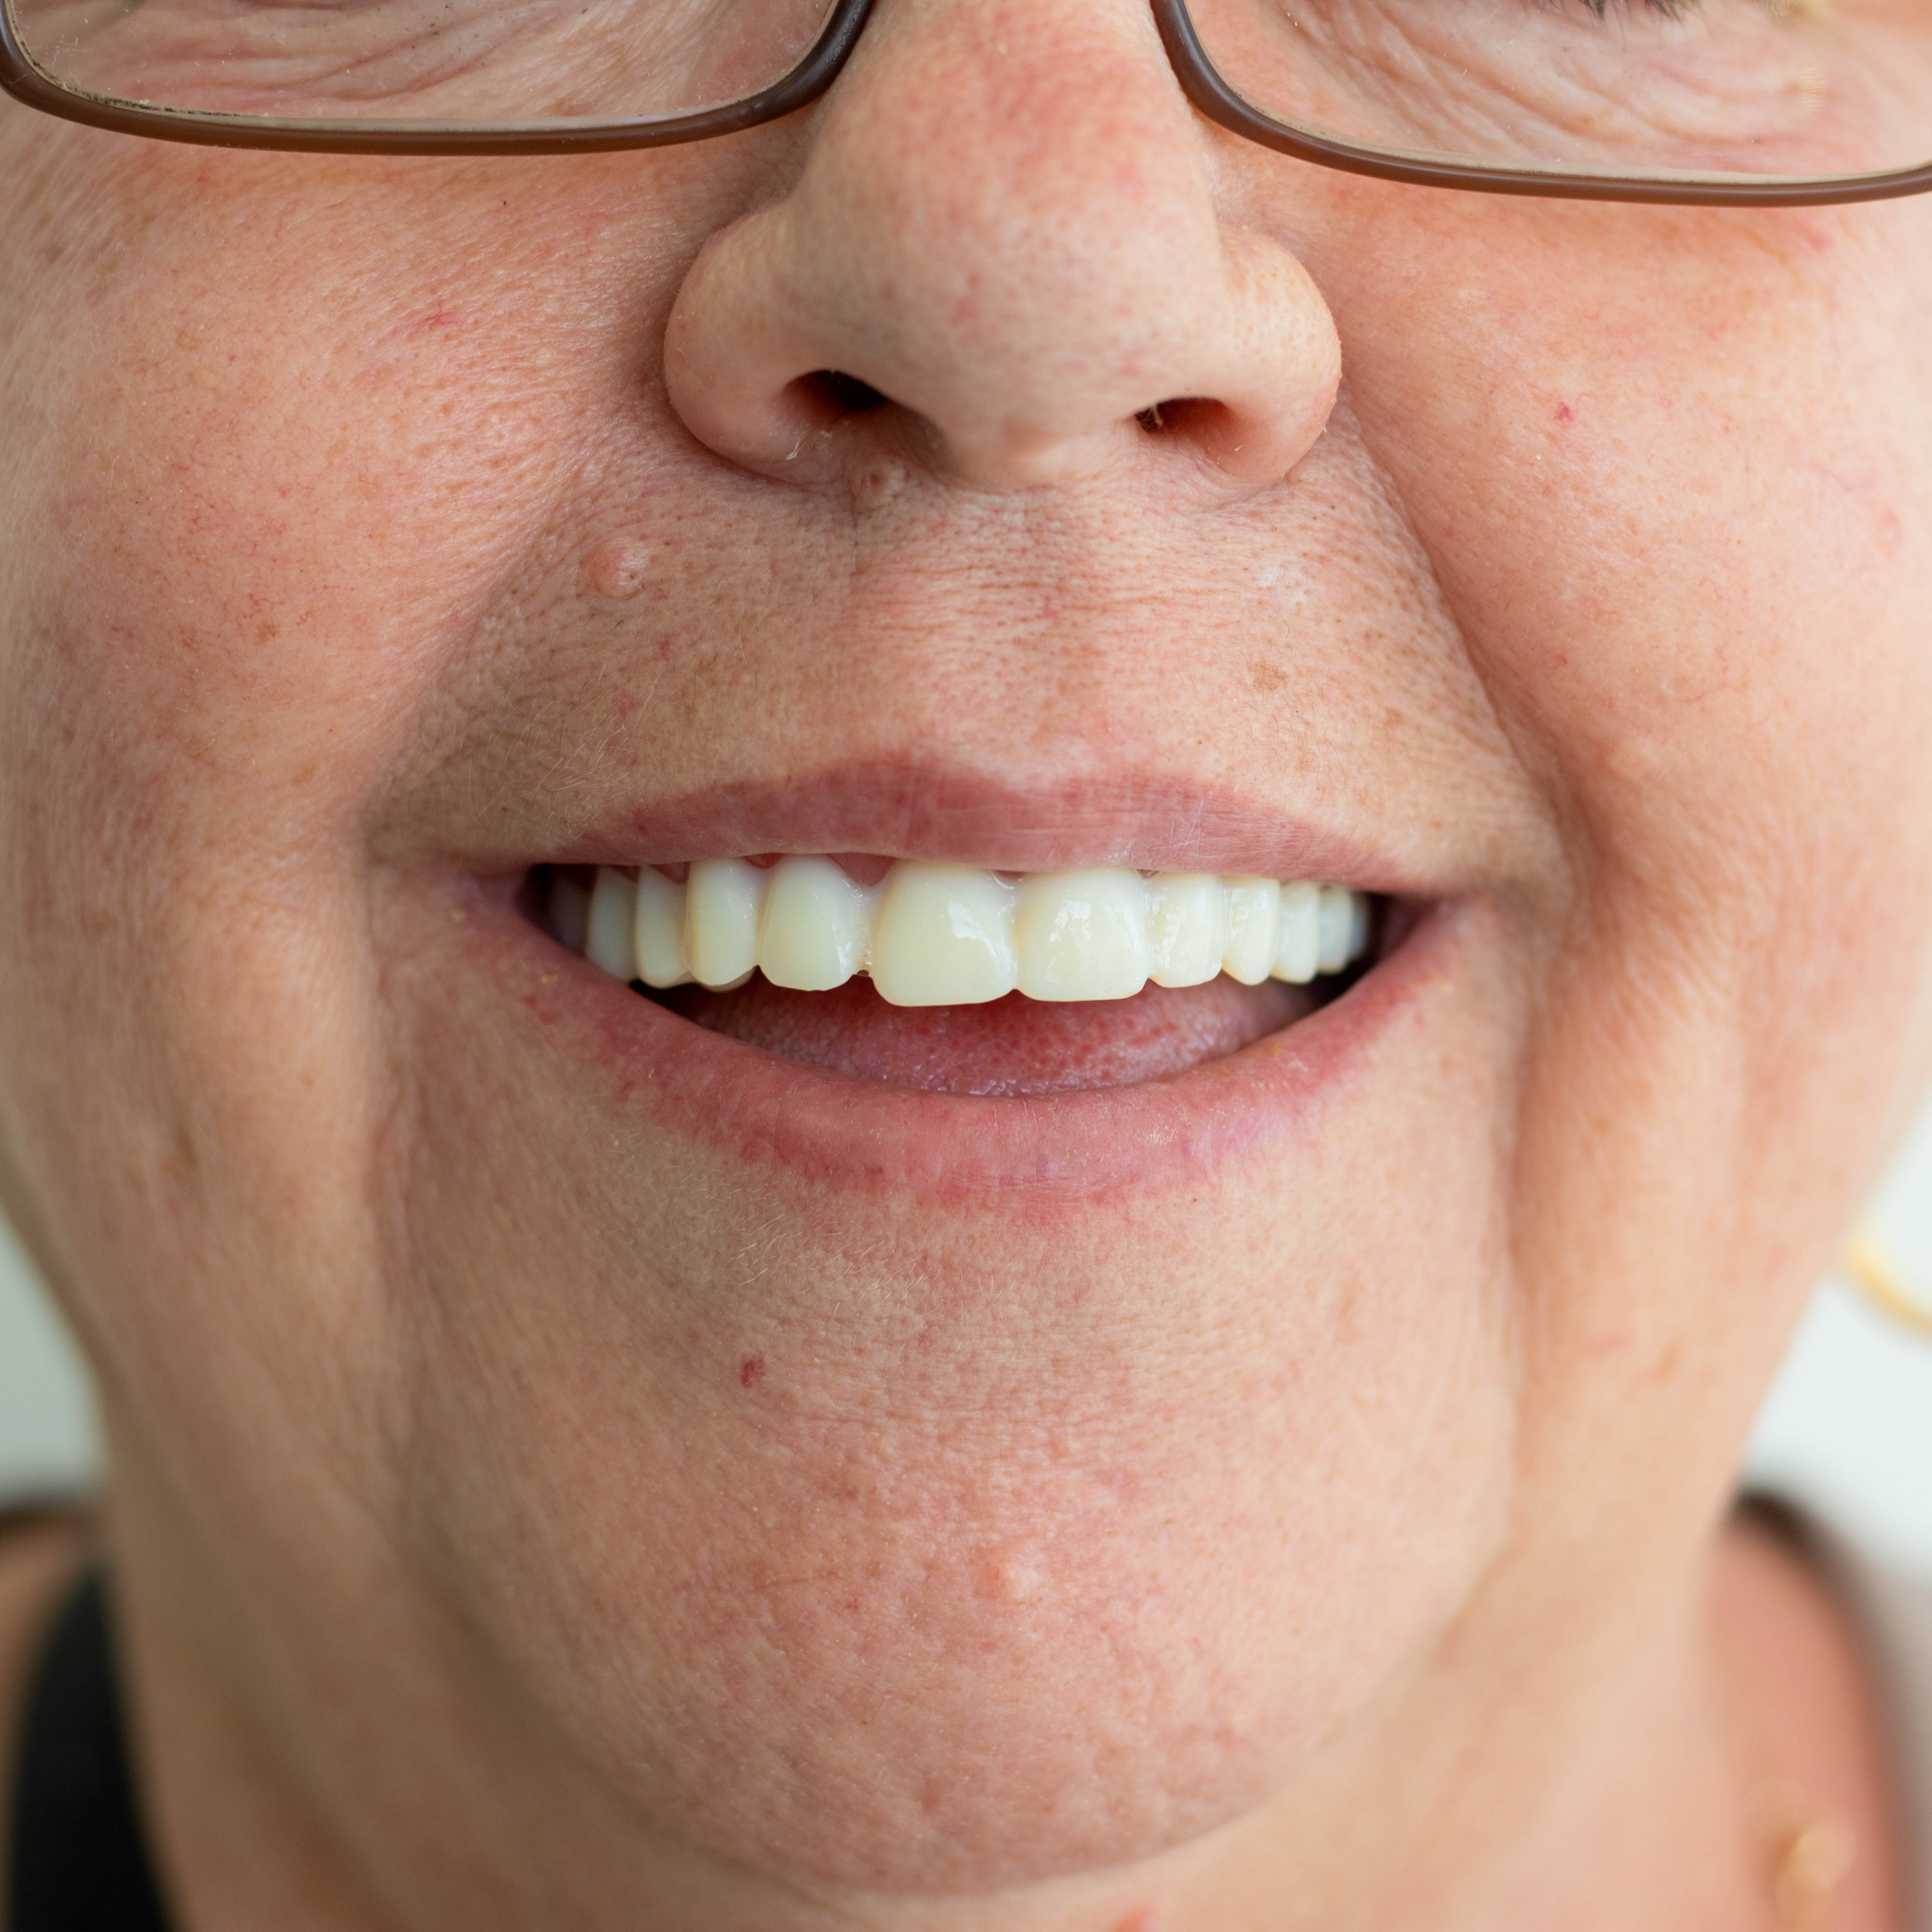 A smiling woman receives her new replacement dentures in a box outside of her door. Denture Care Shop's fast shipping works for emergency dentures or dentures in a day.